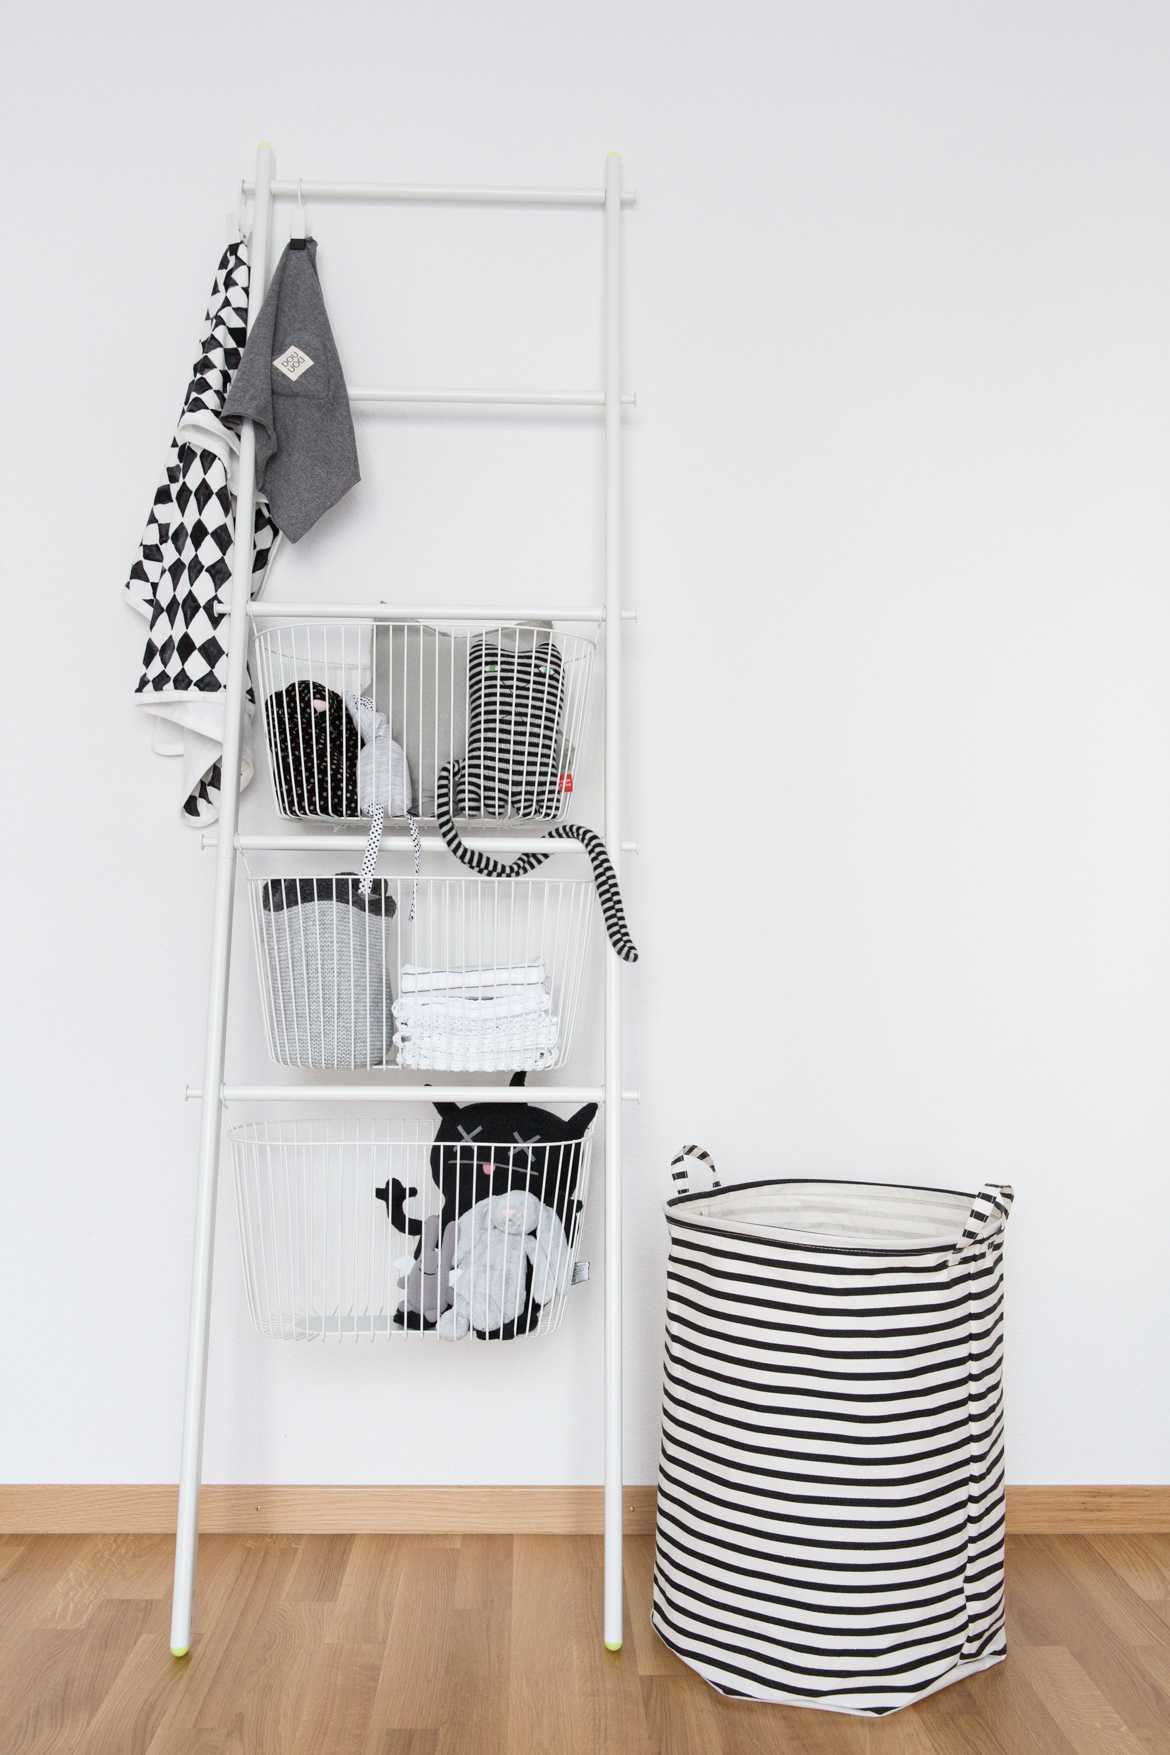 Decorating the nursery with the IKEA Sprutt collection